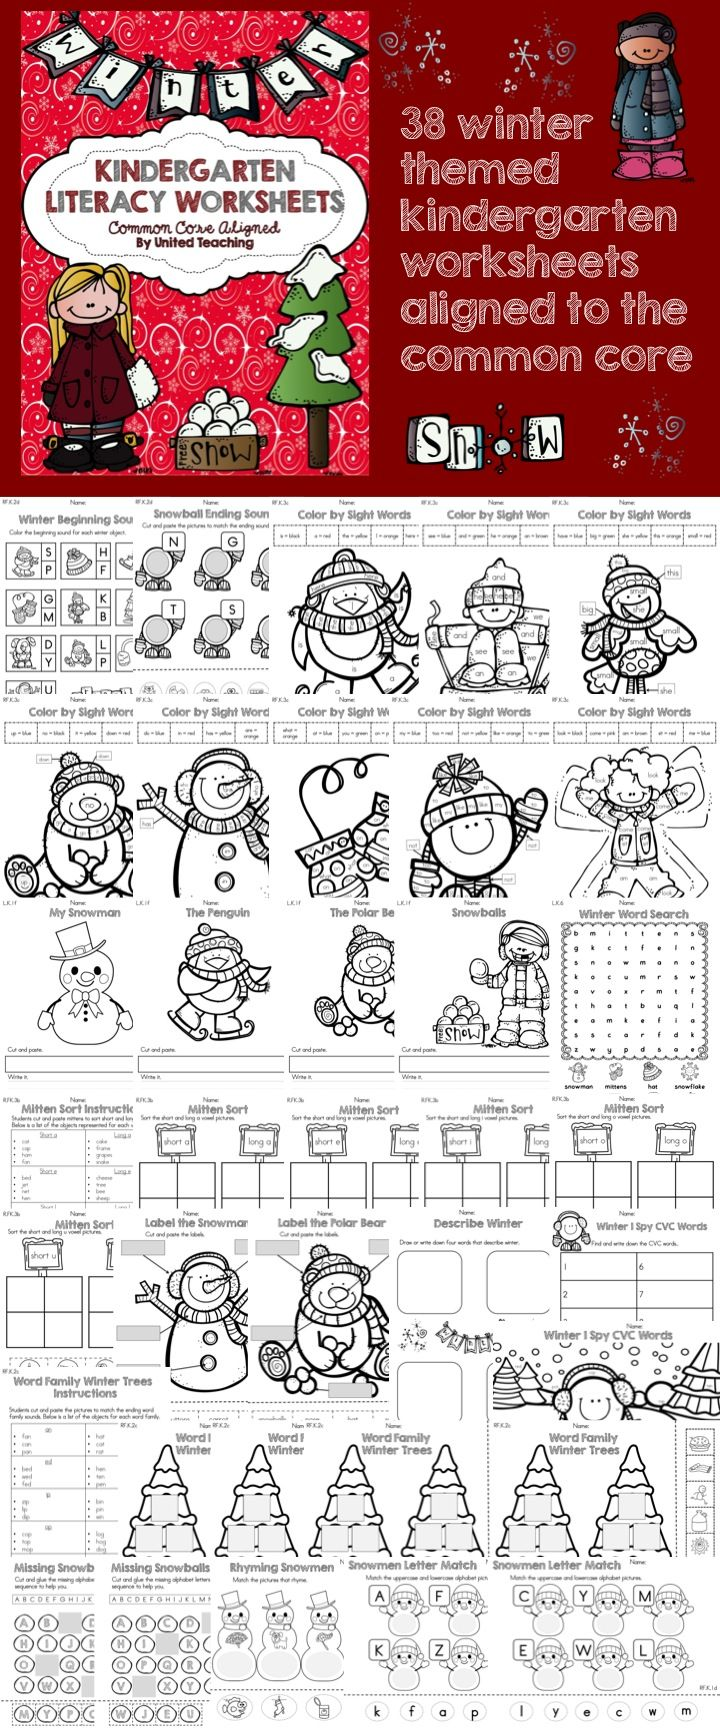 Kindergarten Common Core Aligned Winter Literacy Worksheets (from United Teaching)